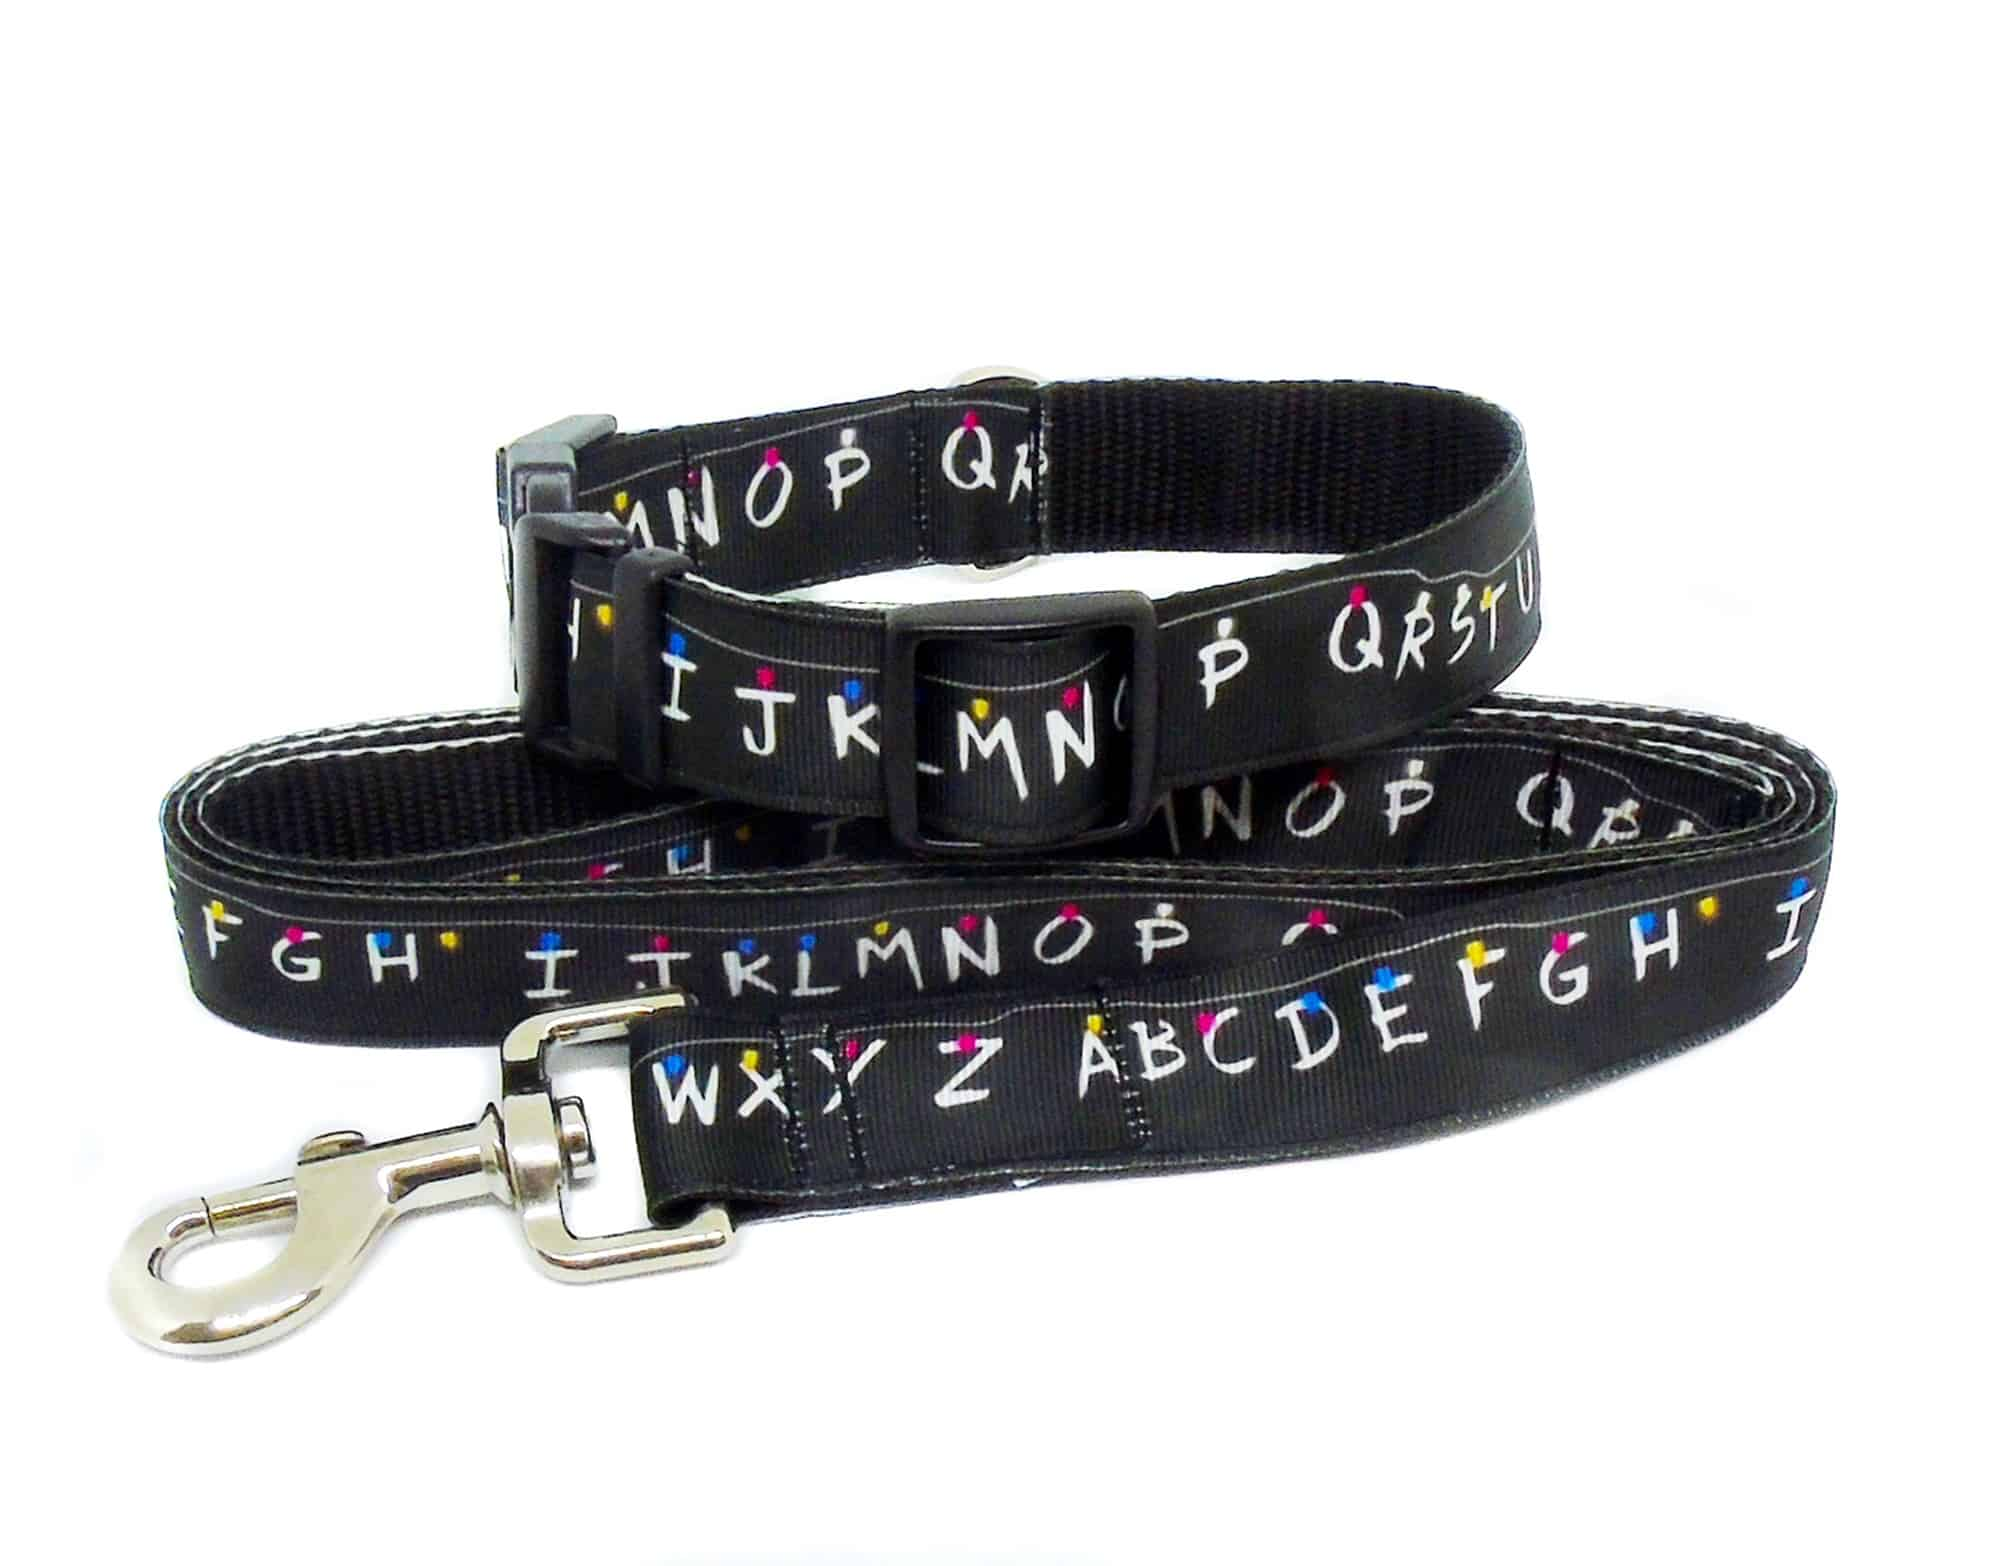 stranger things collar and lead set